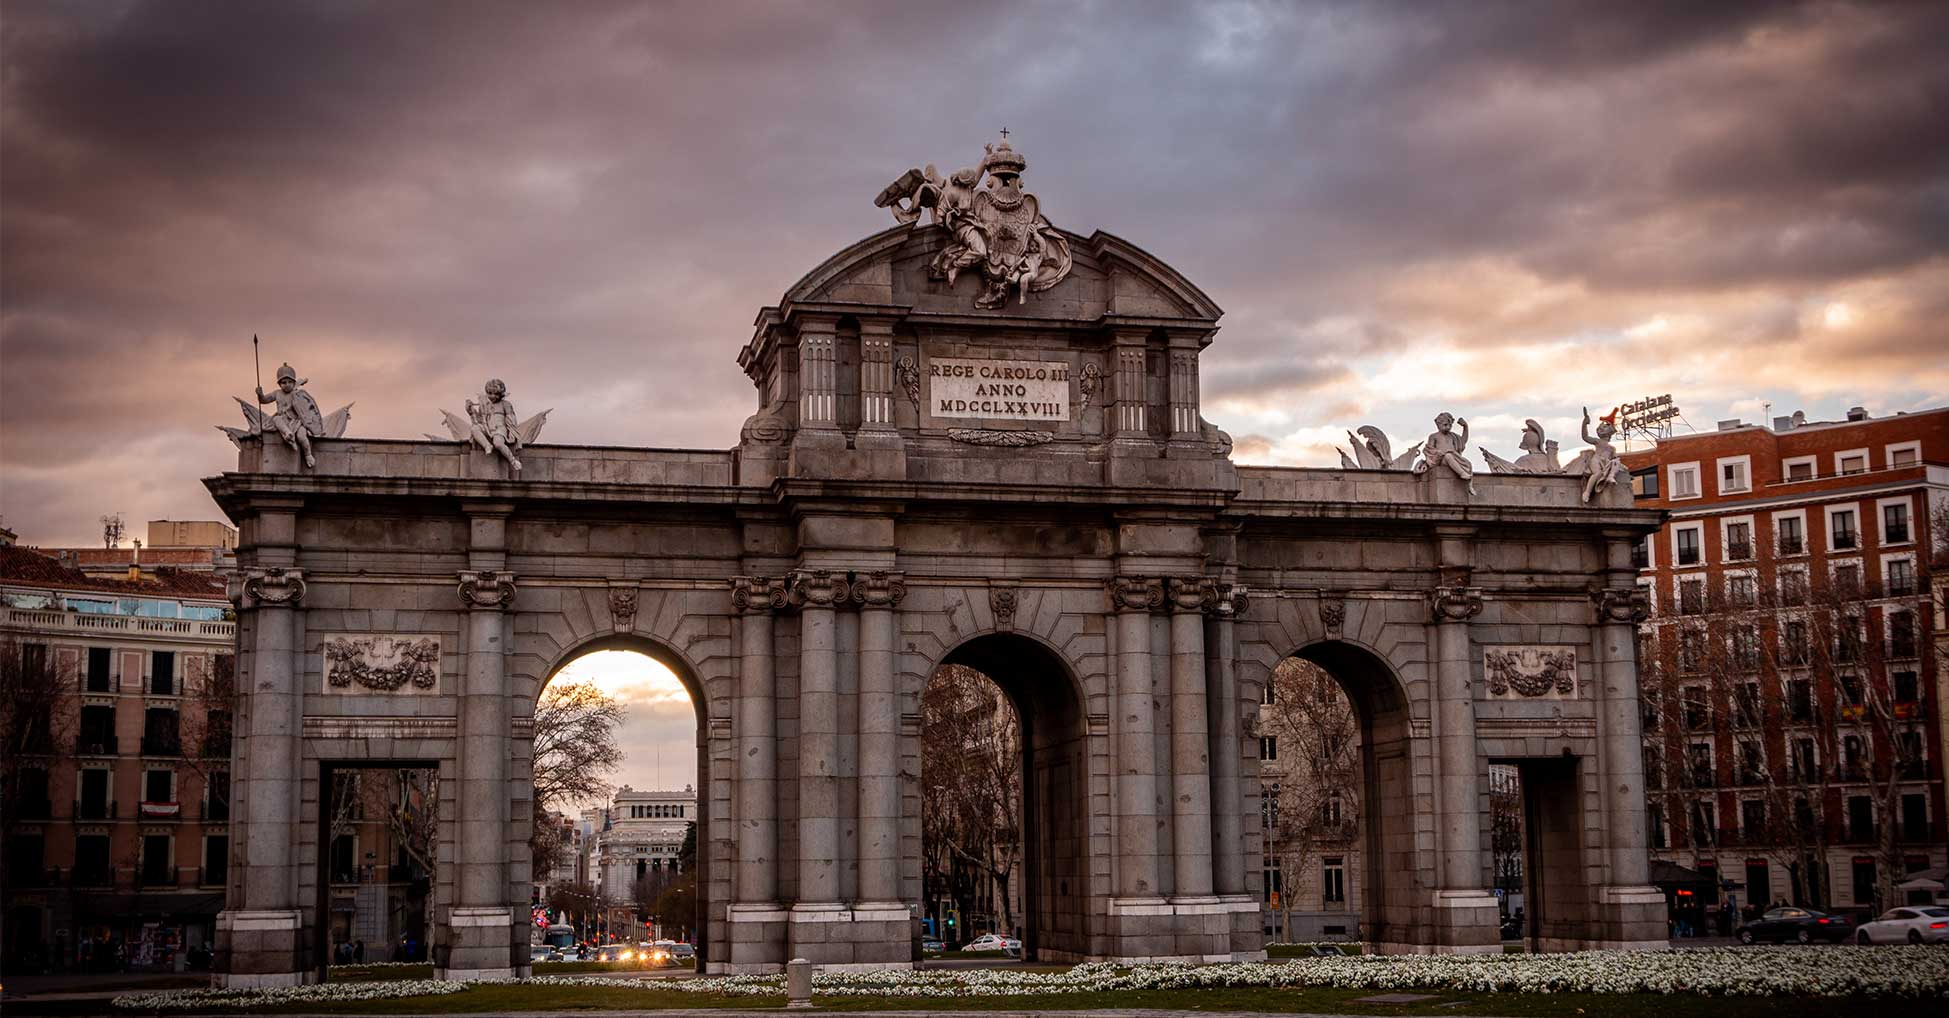 Picture of Puerta de Alcalá in Madrid. The image shows the monument during sunset.